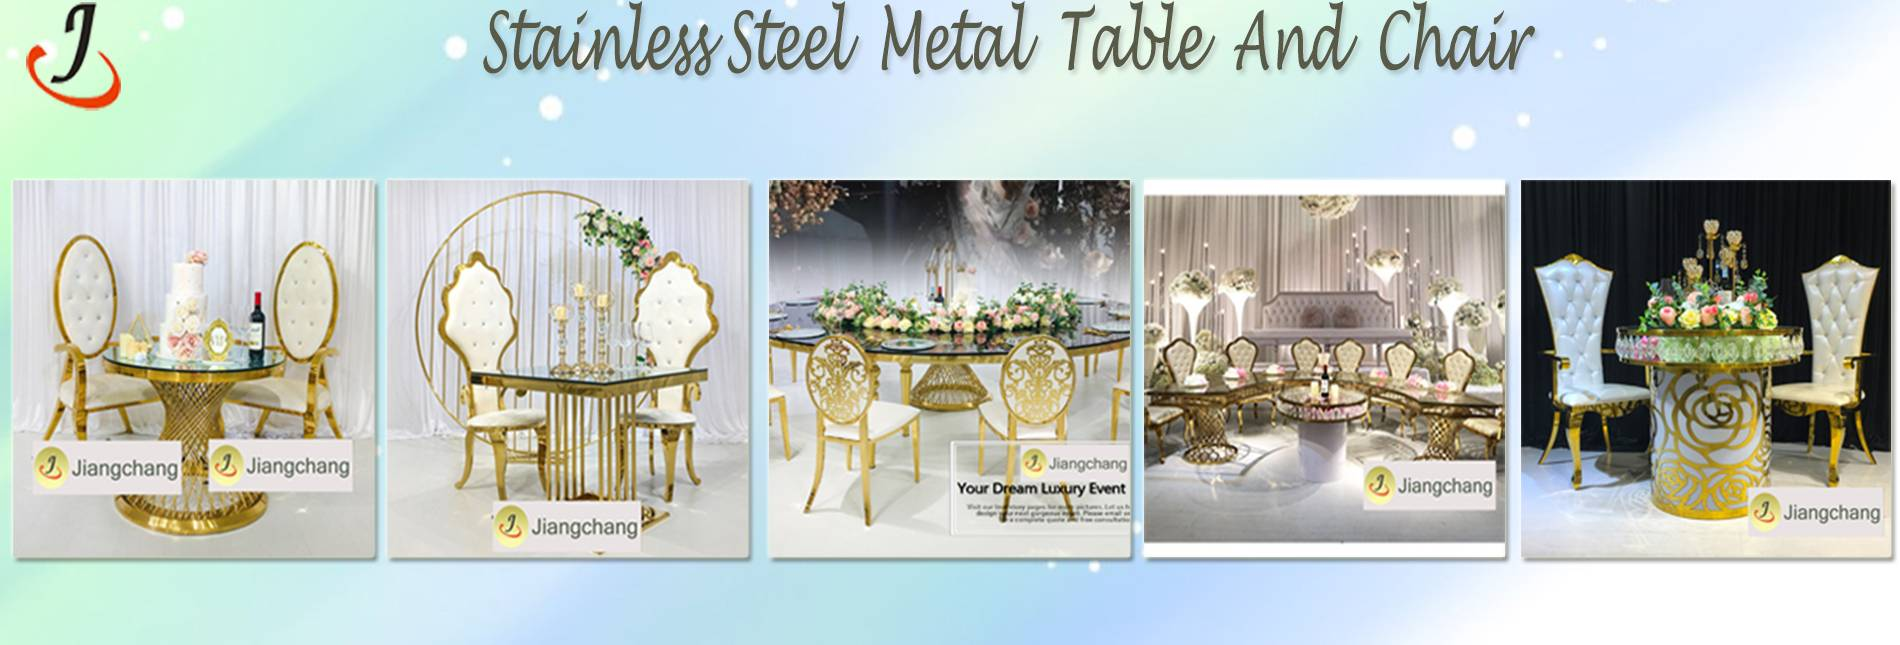 stainless metal table and chair2